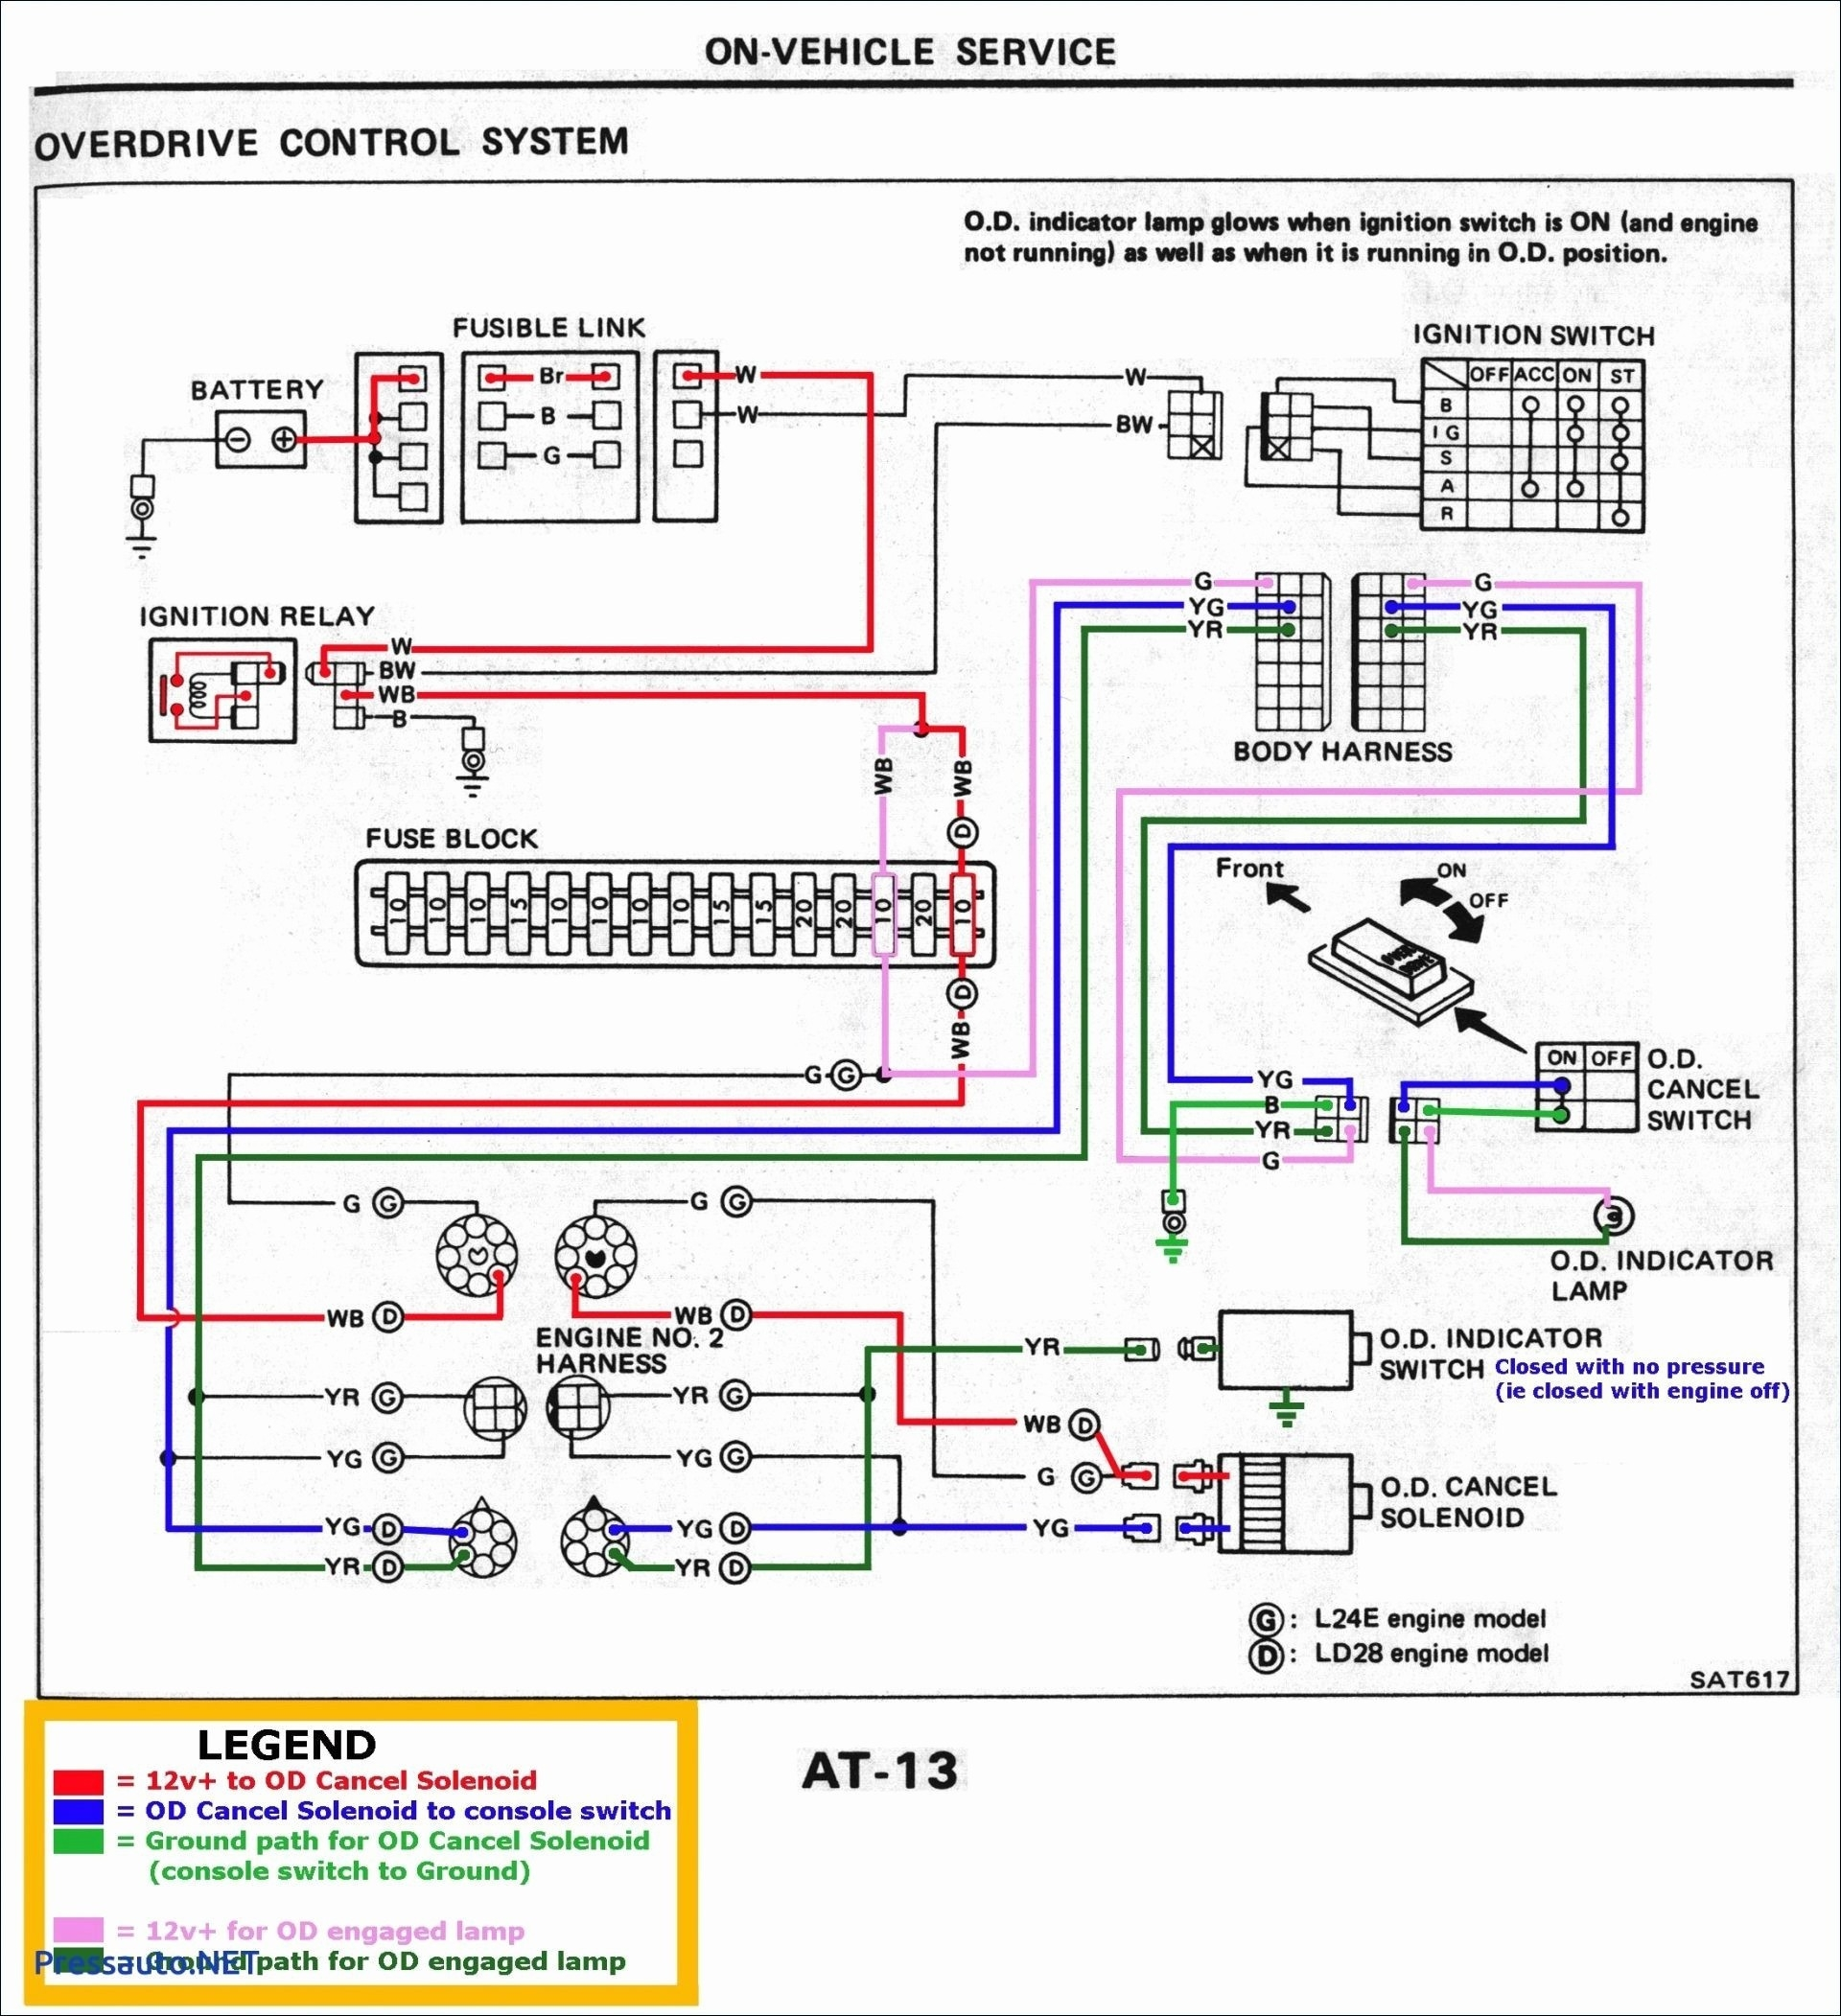 2006 Dodge Ram 2500 Trailer Wiring Diagram